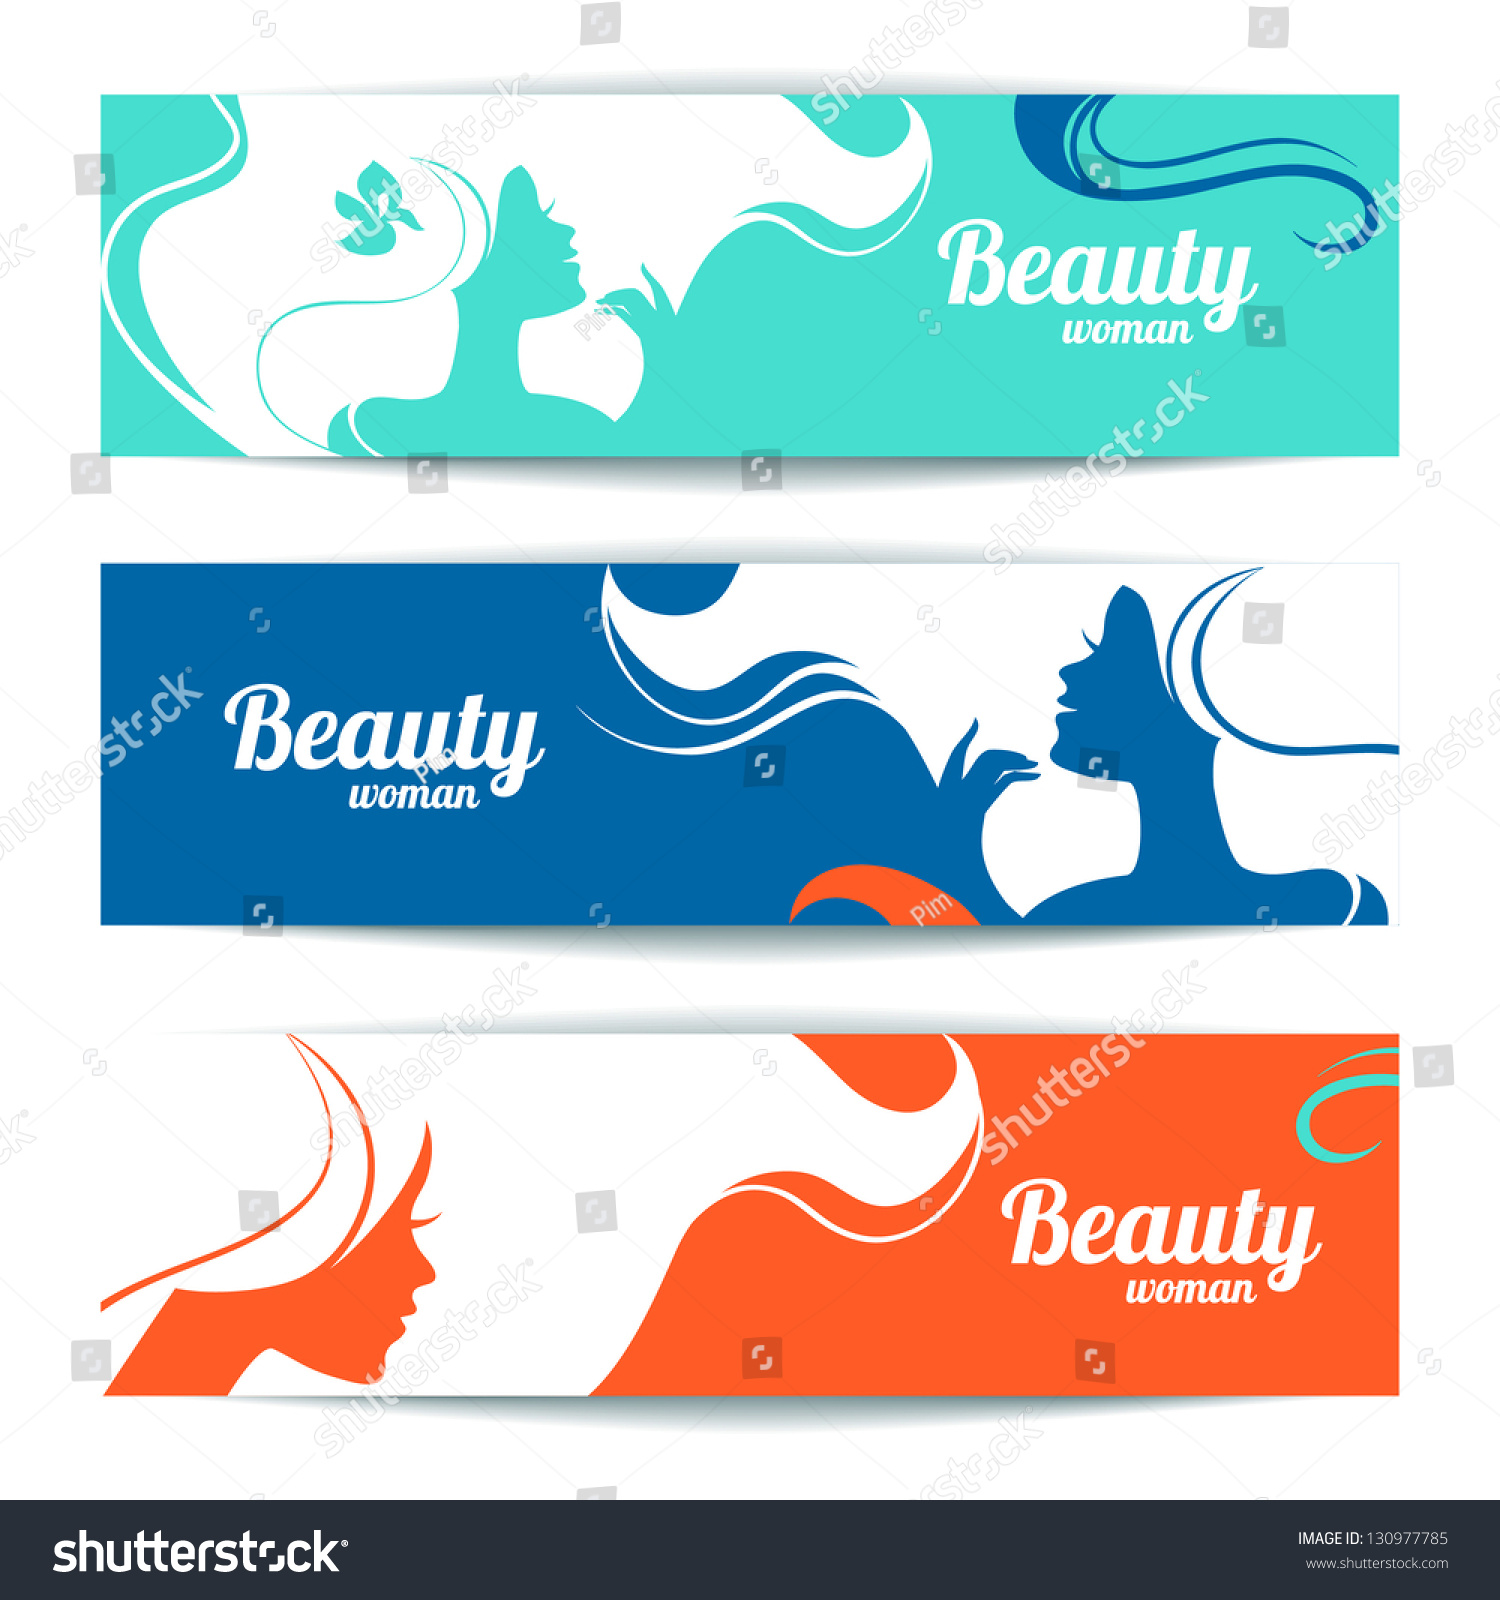 Banners Stylish Beautiful Woman Silhouette Template Vector de stock ...